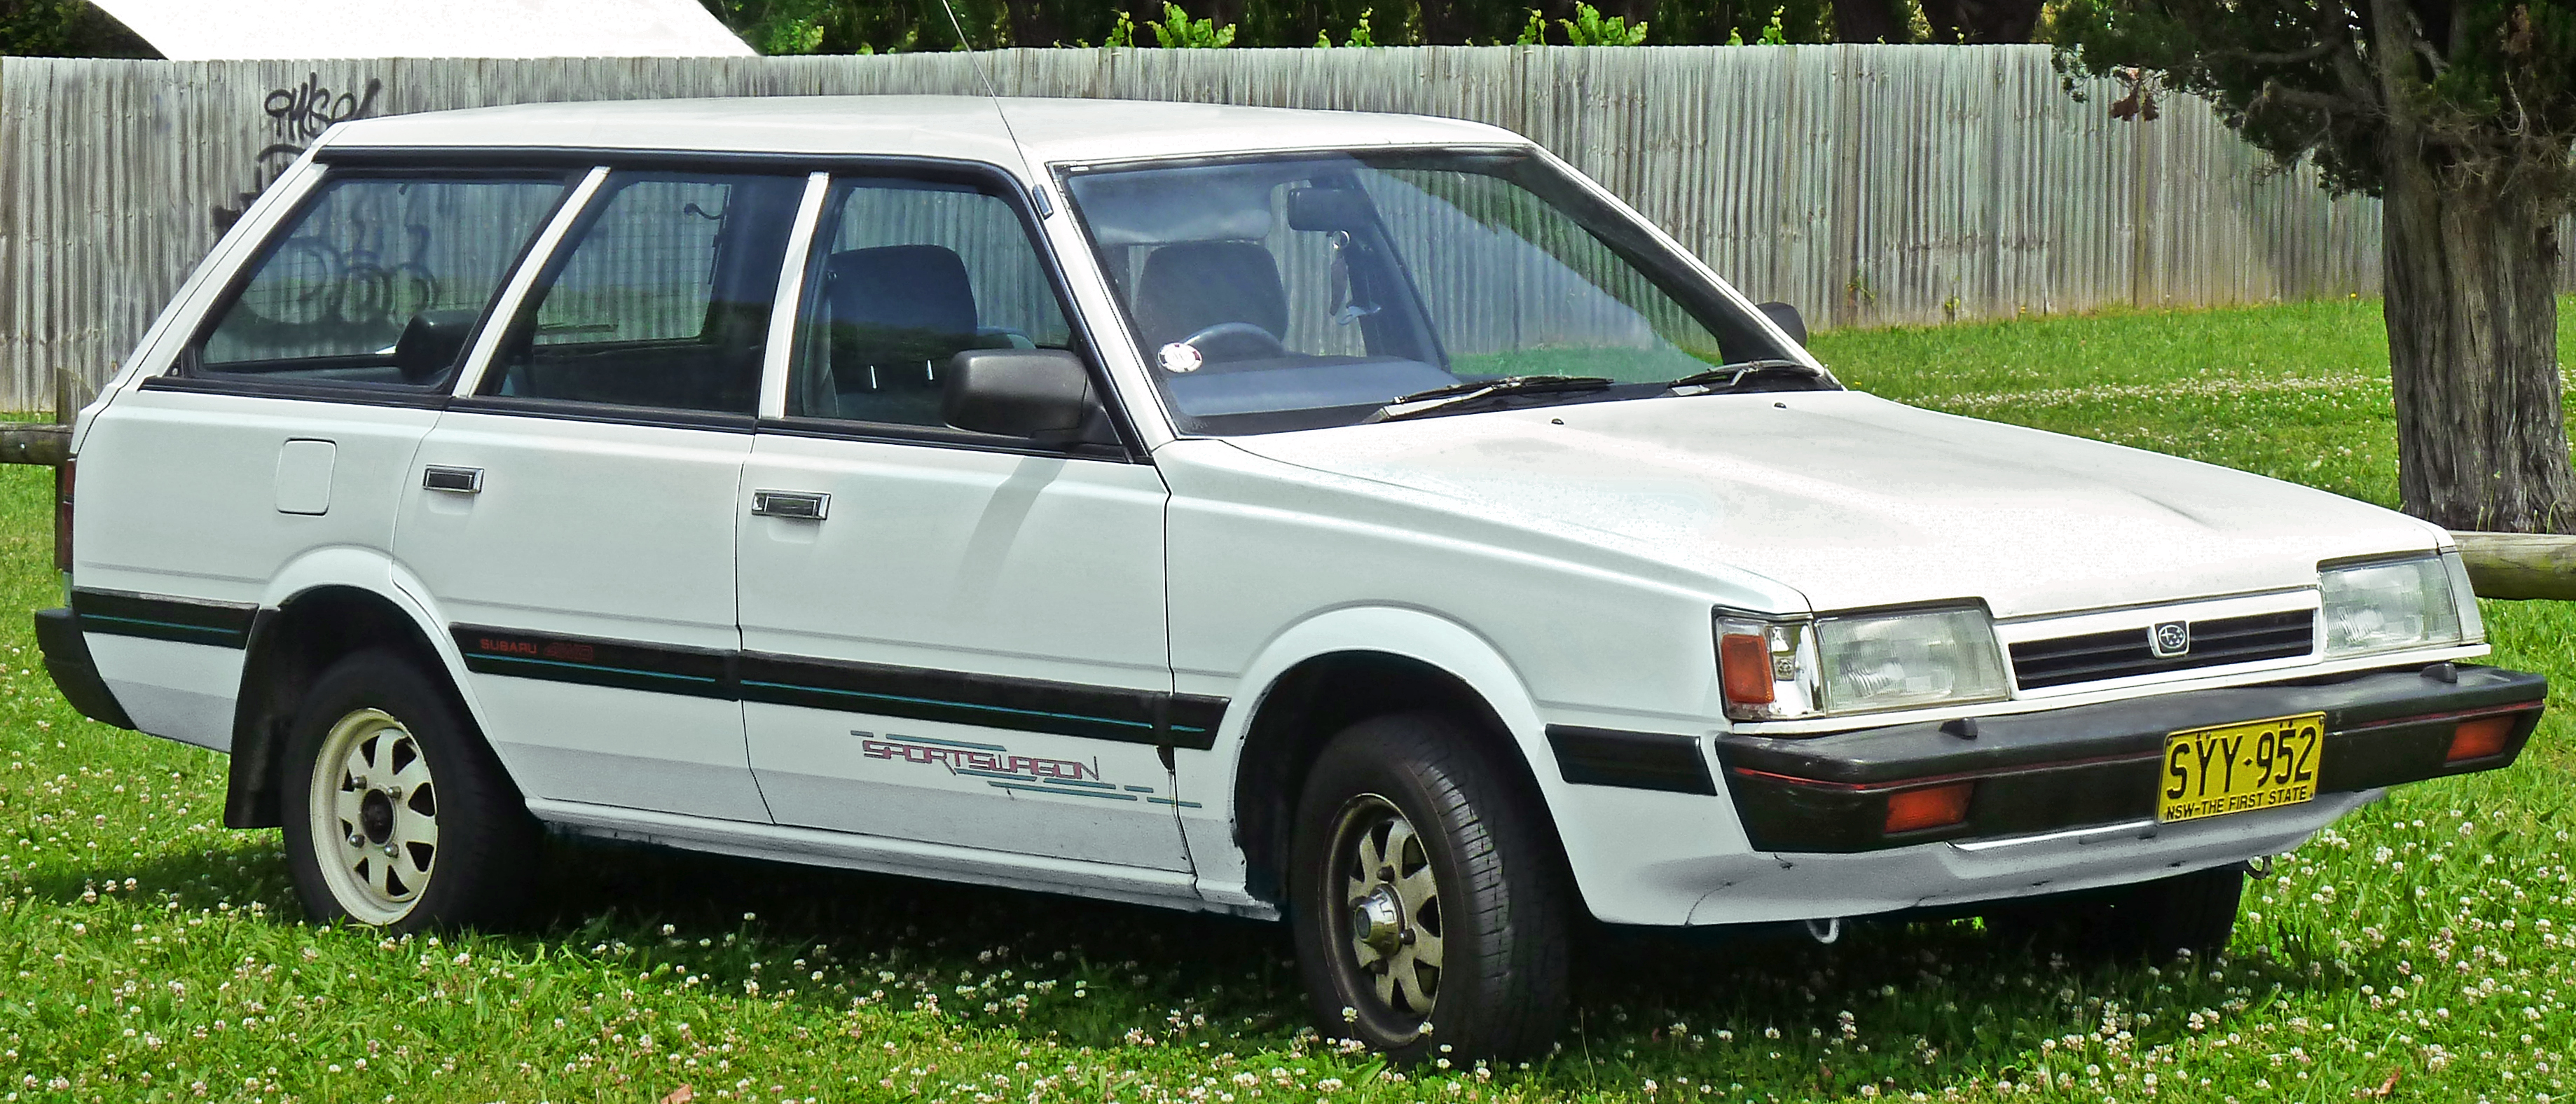 Subaru l-series photo - 7